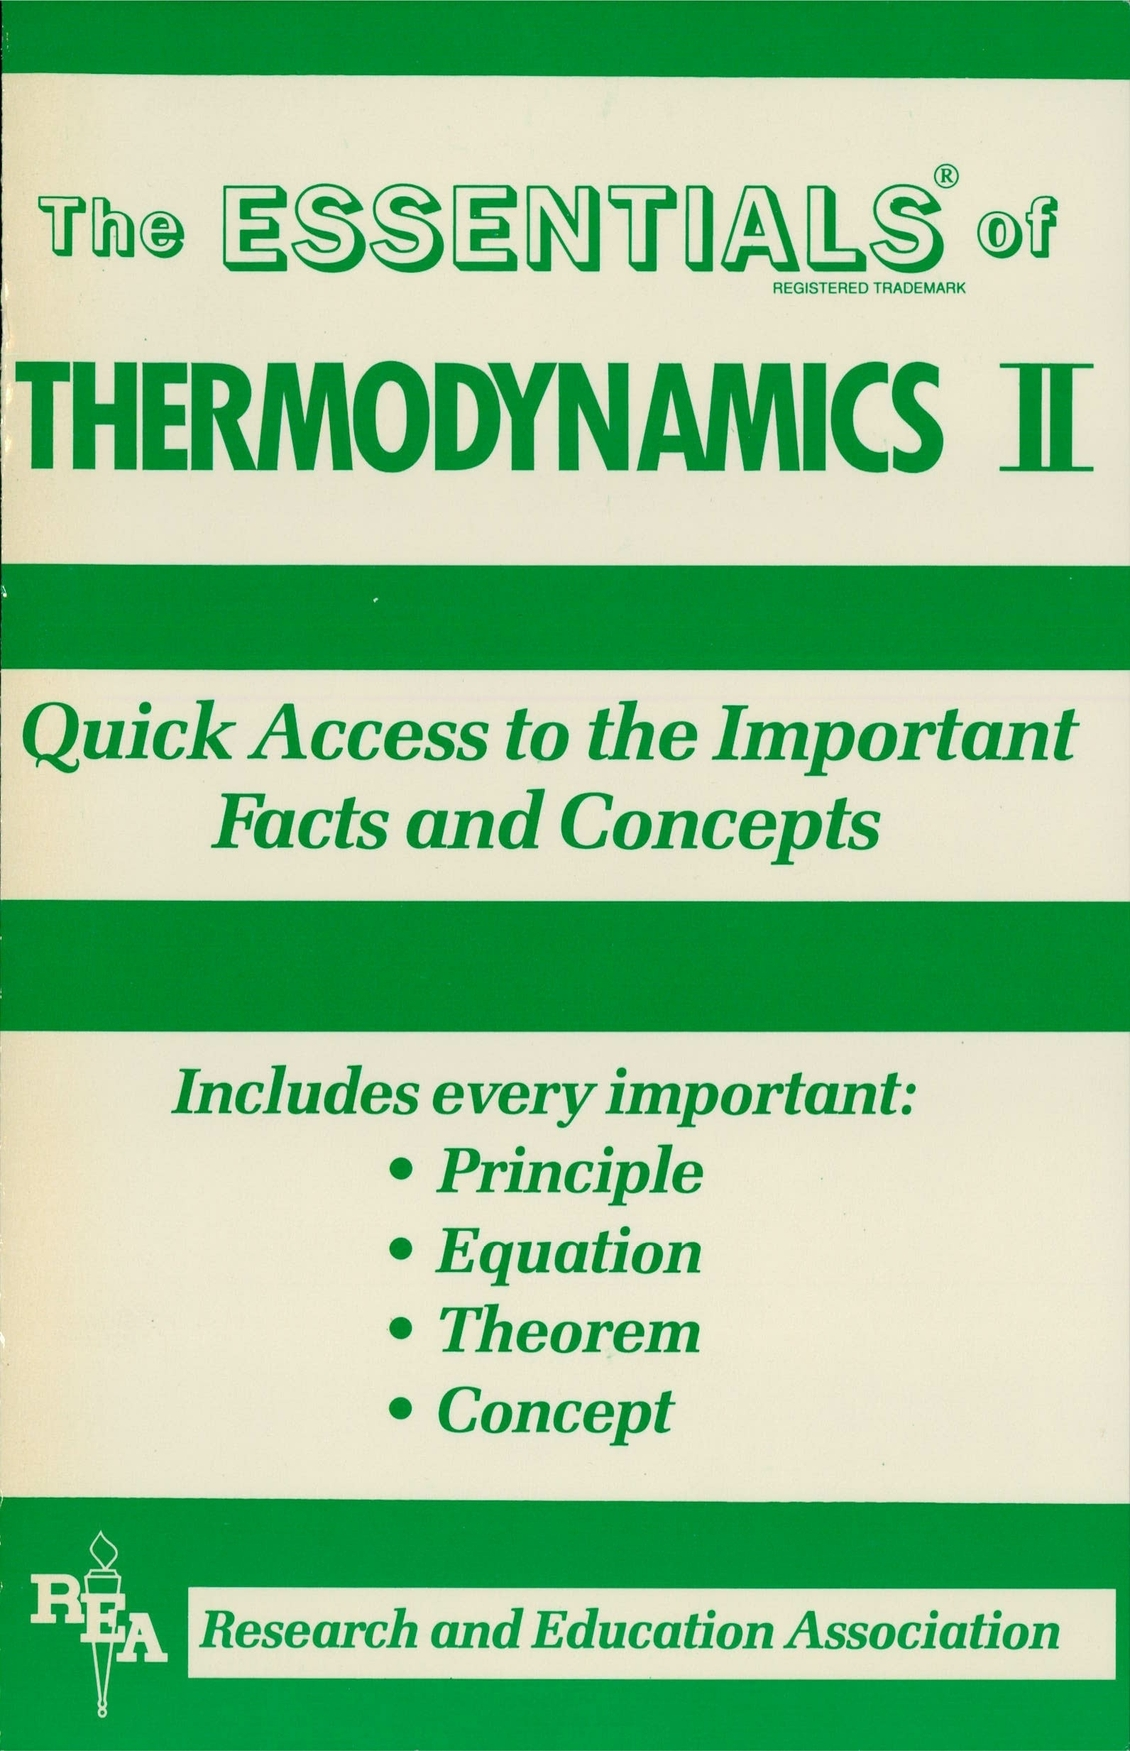 Thermodynamics II Essentials